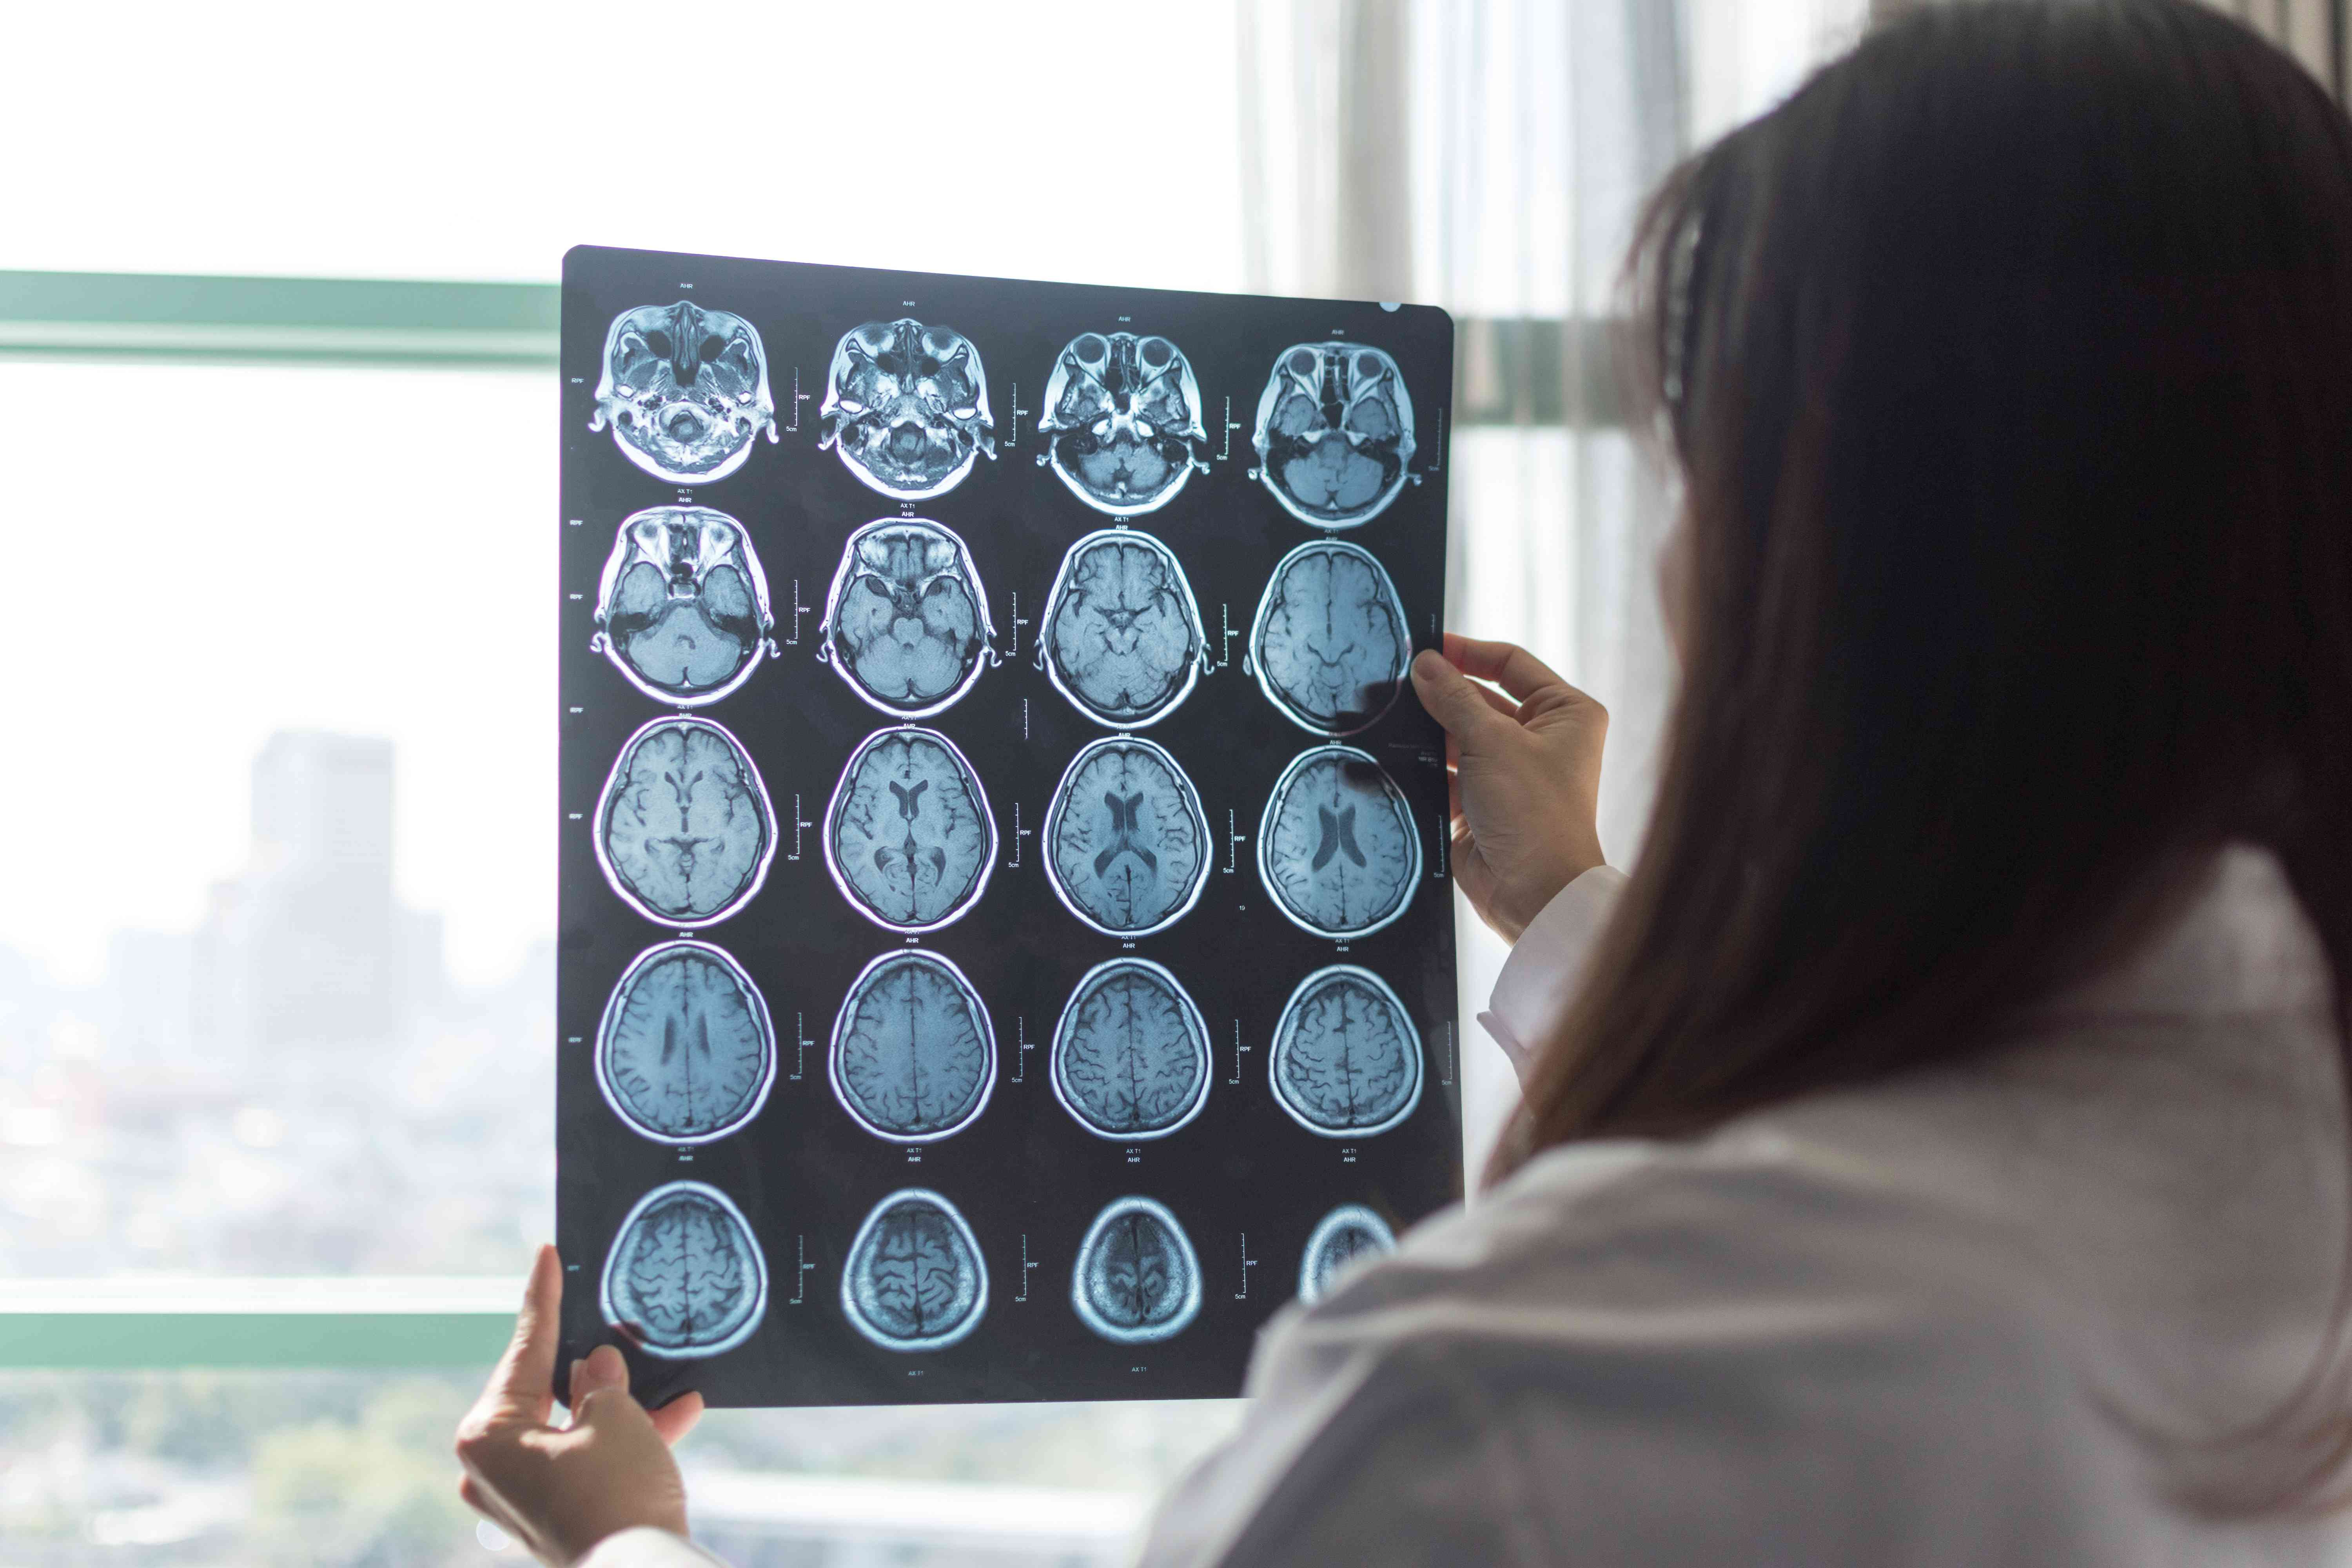 MRI digital x-ray of brain with radiologist doctor oncology working in clinic hospital. Medical healthcare concept.